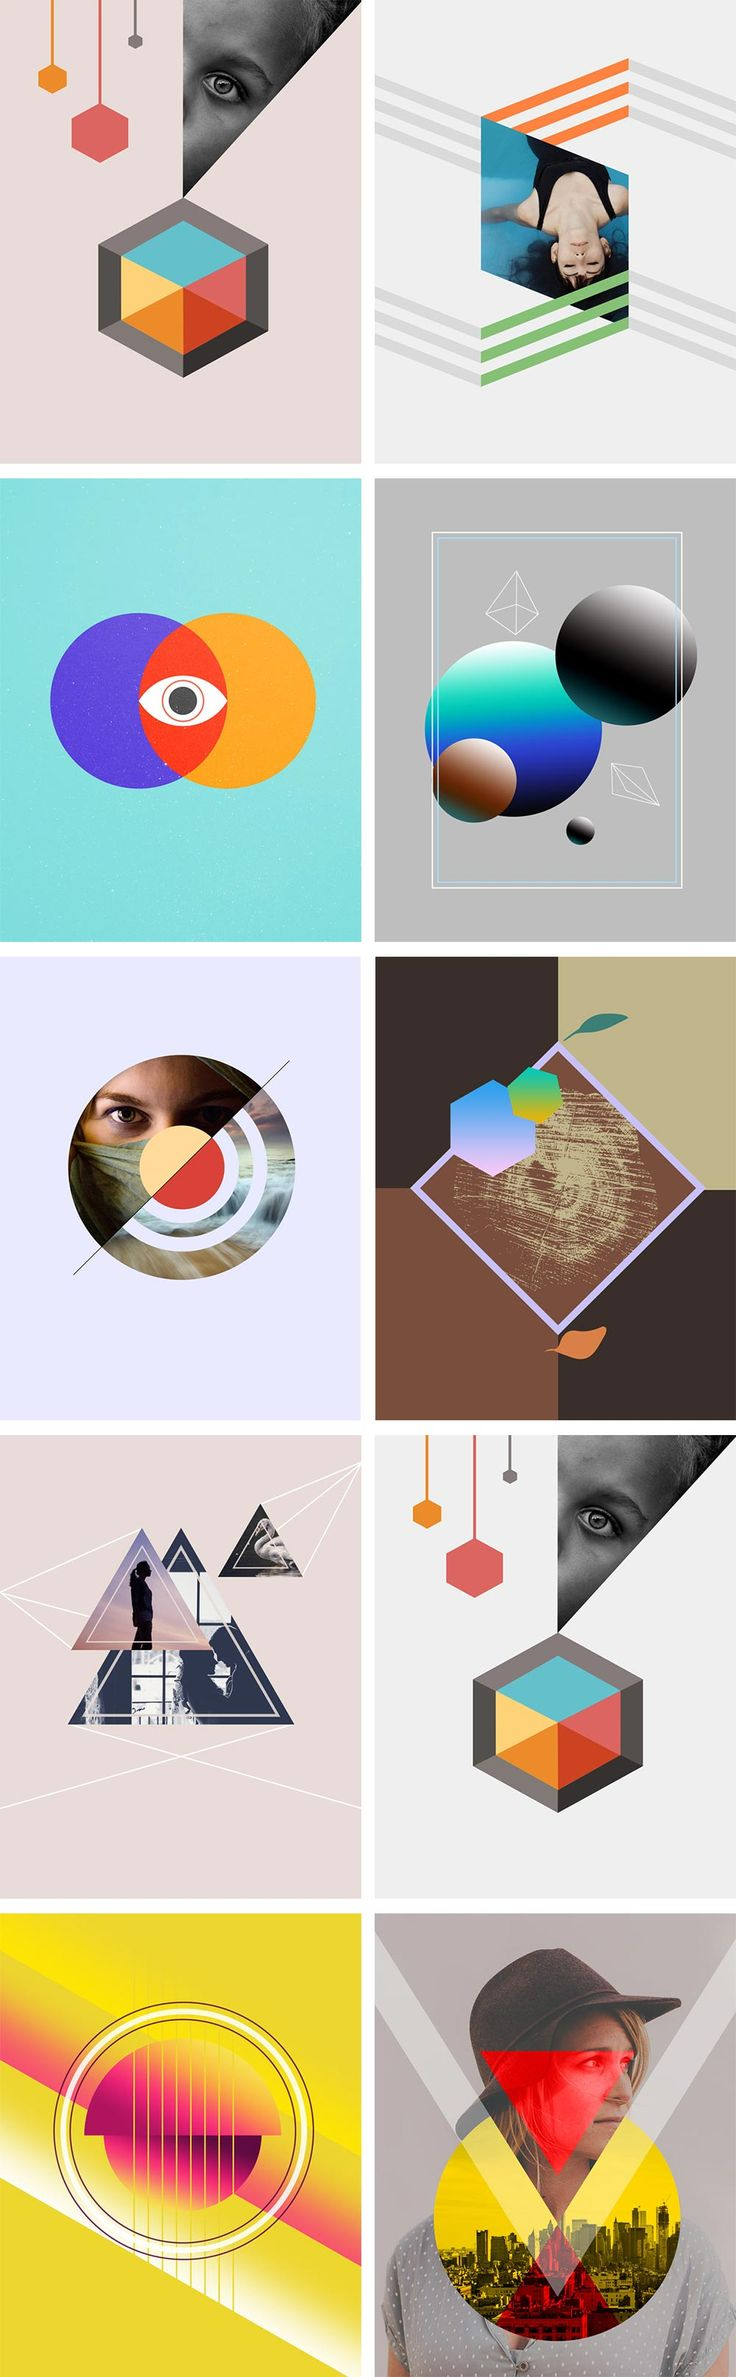 #Abstract #Vector Forms And #Shapes